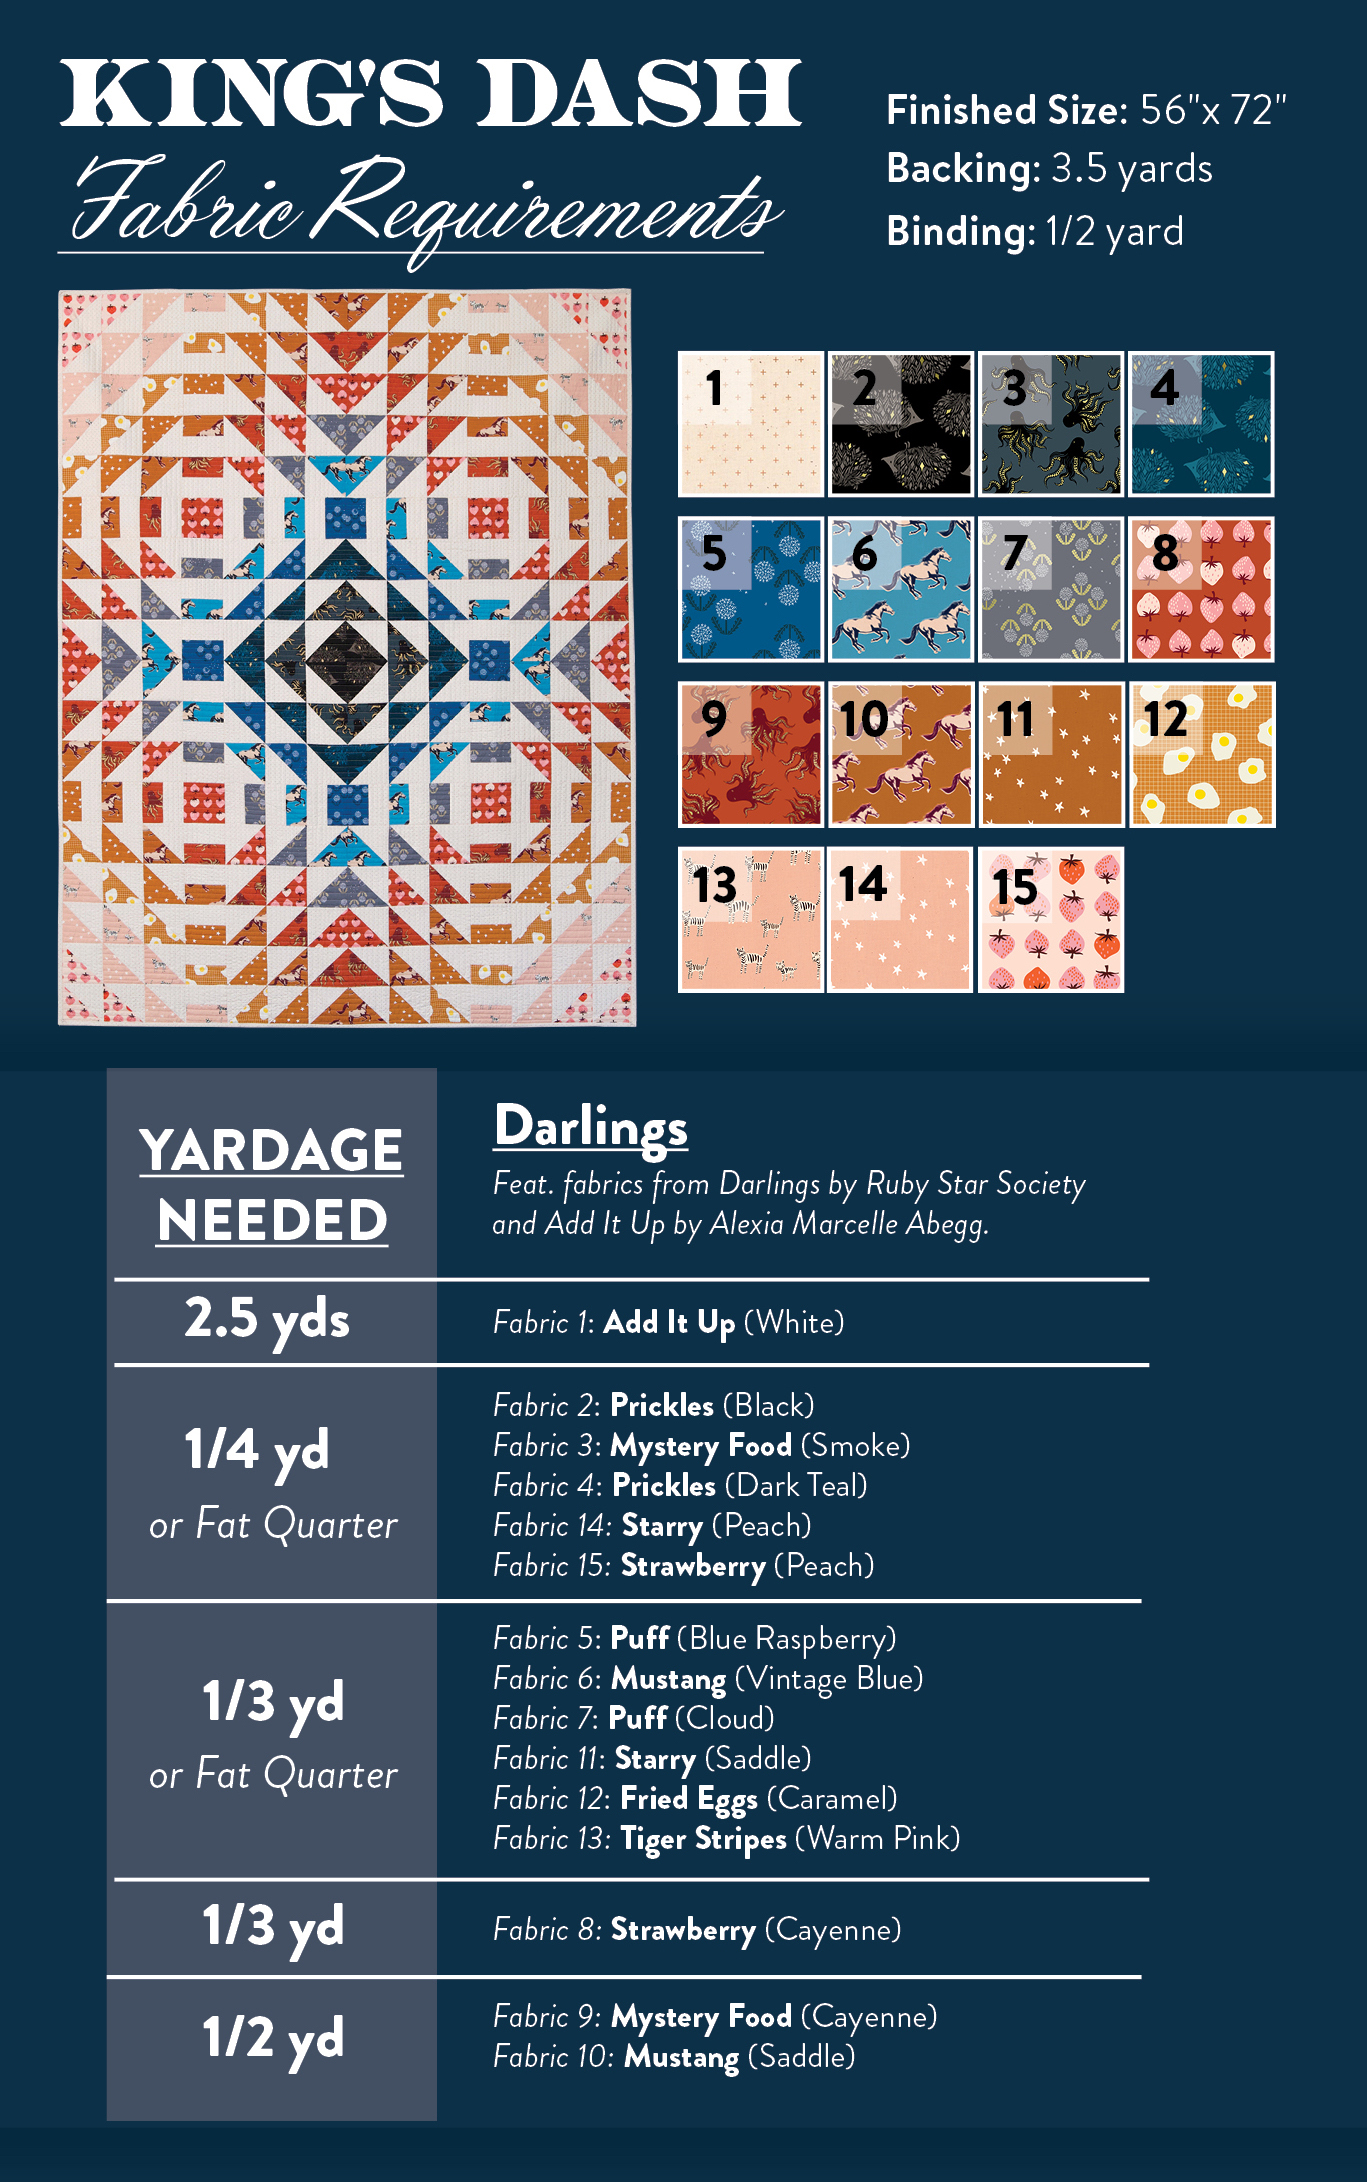 darling_kings-dash_fabric-requirements.jpg